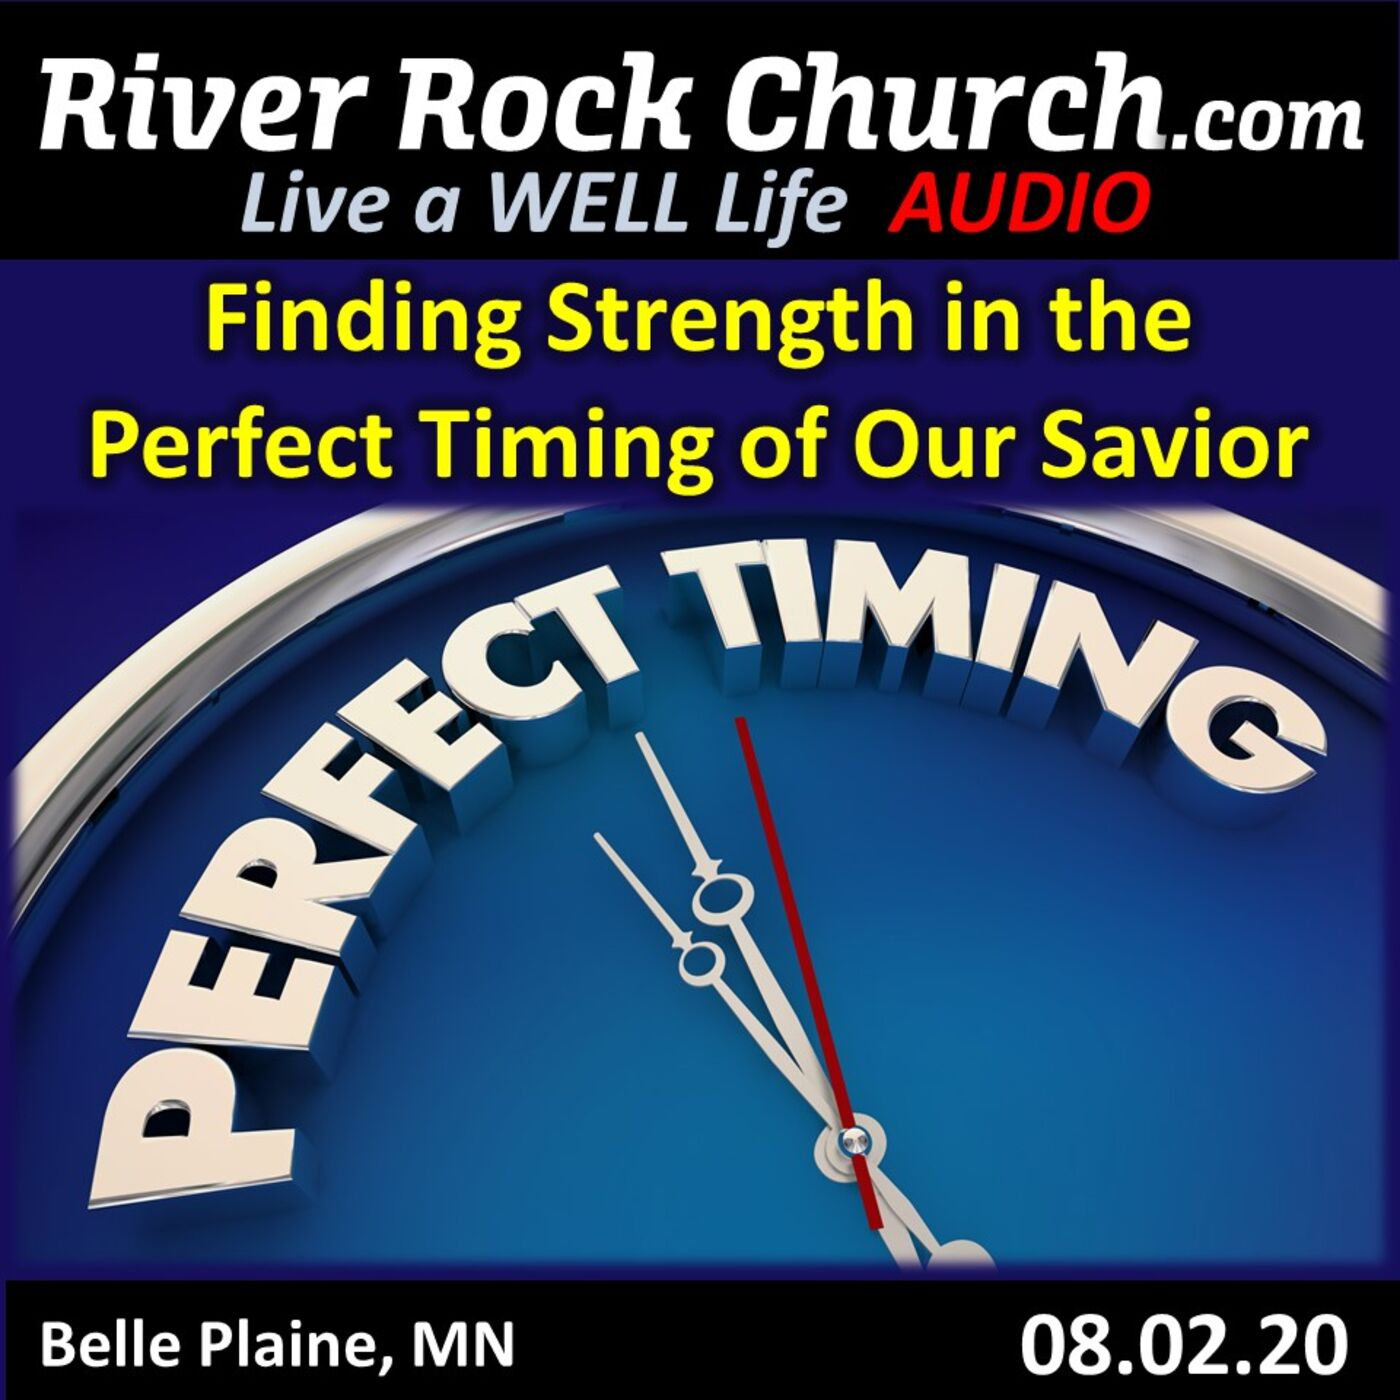 Finding Strength in the Perfect Timing of Our Savior